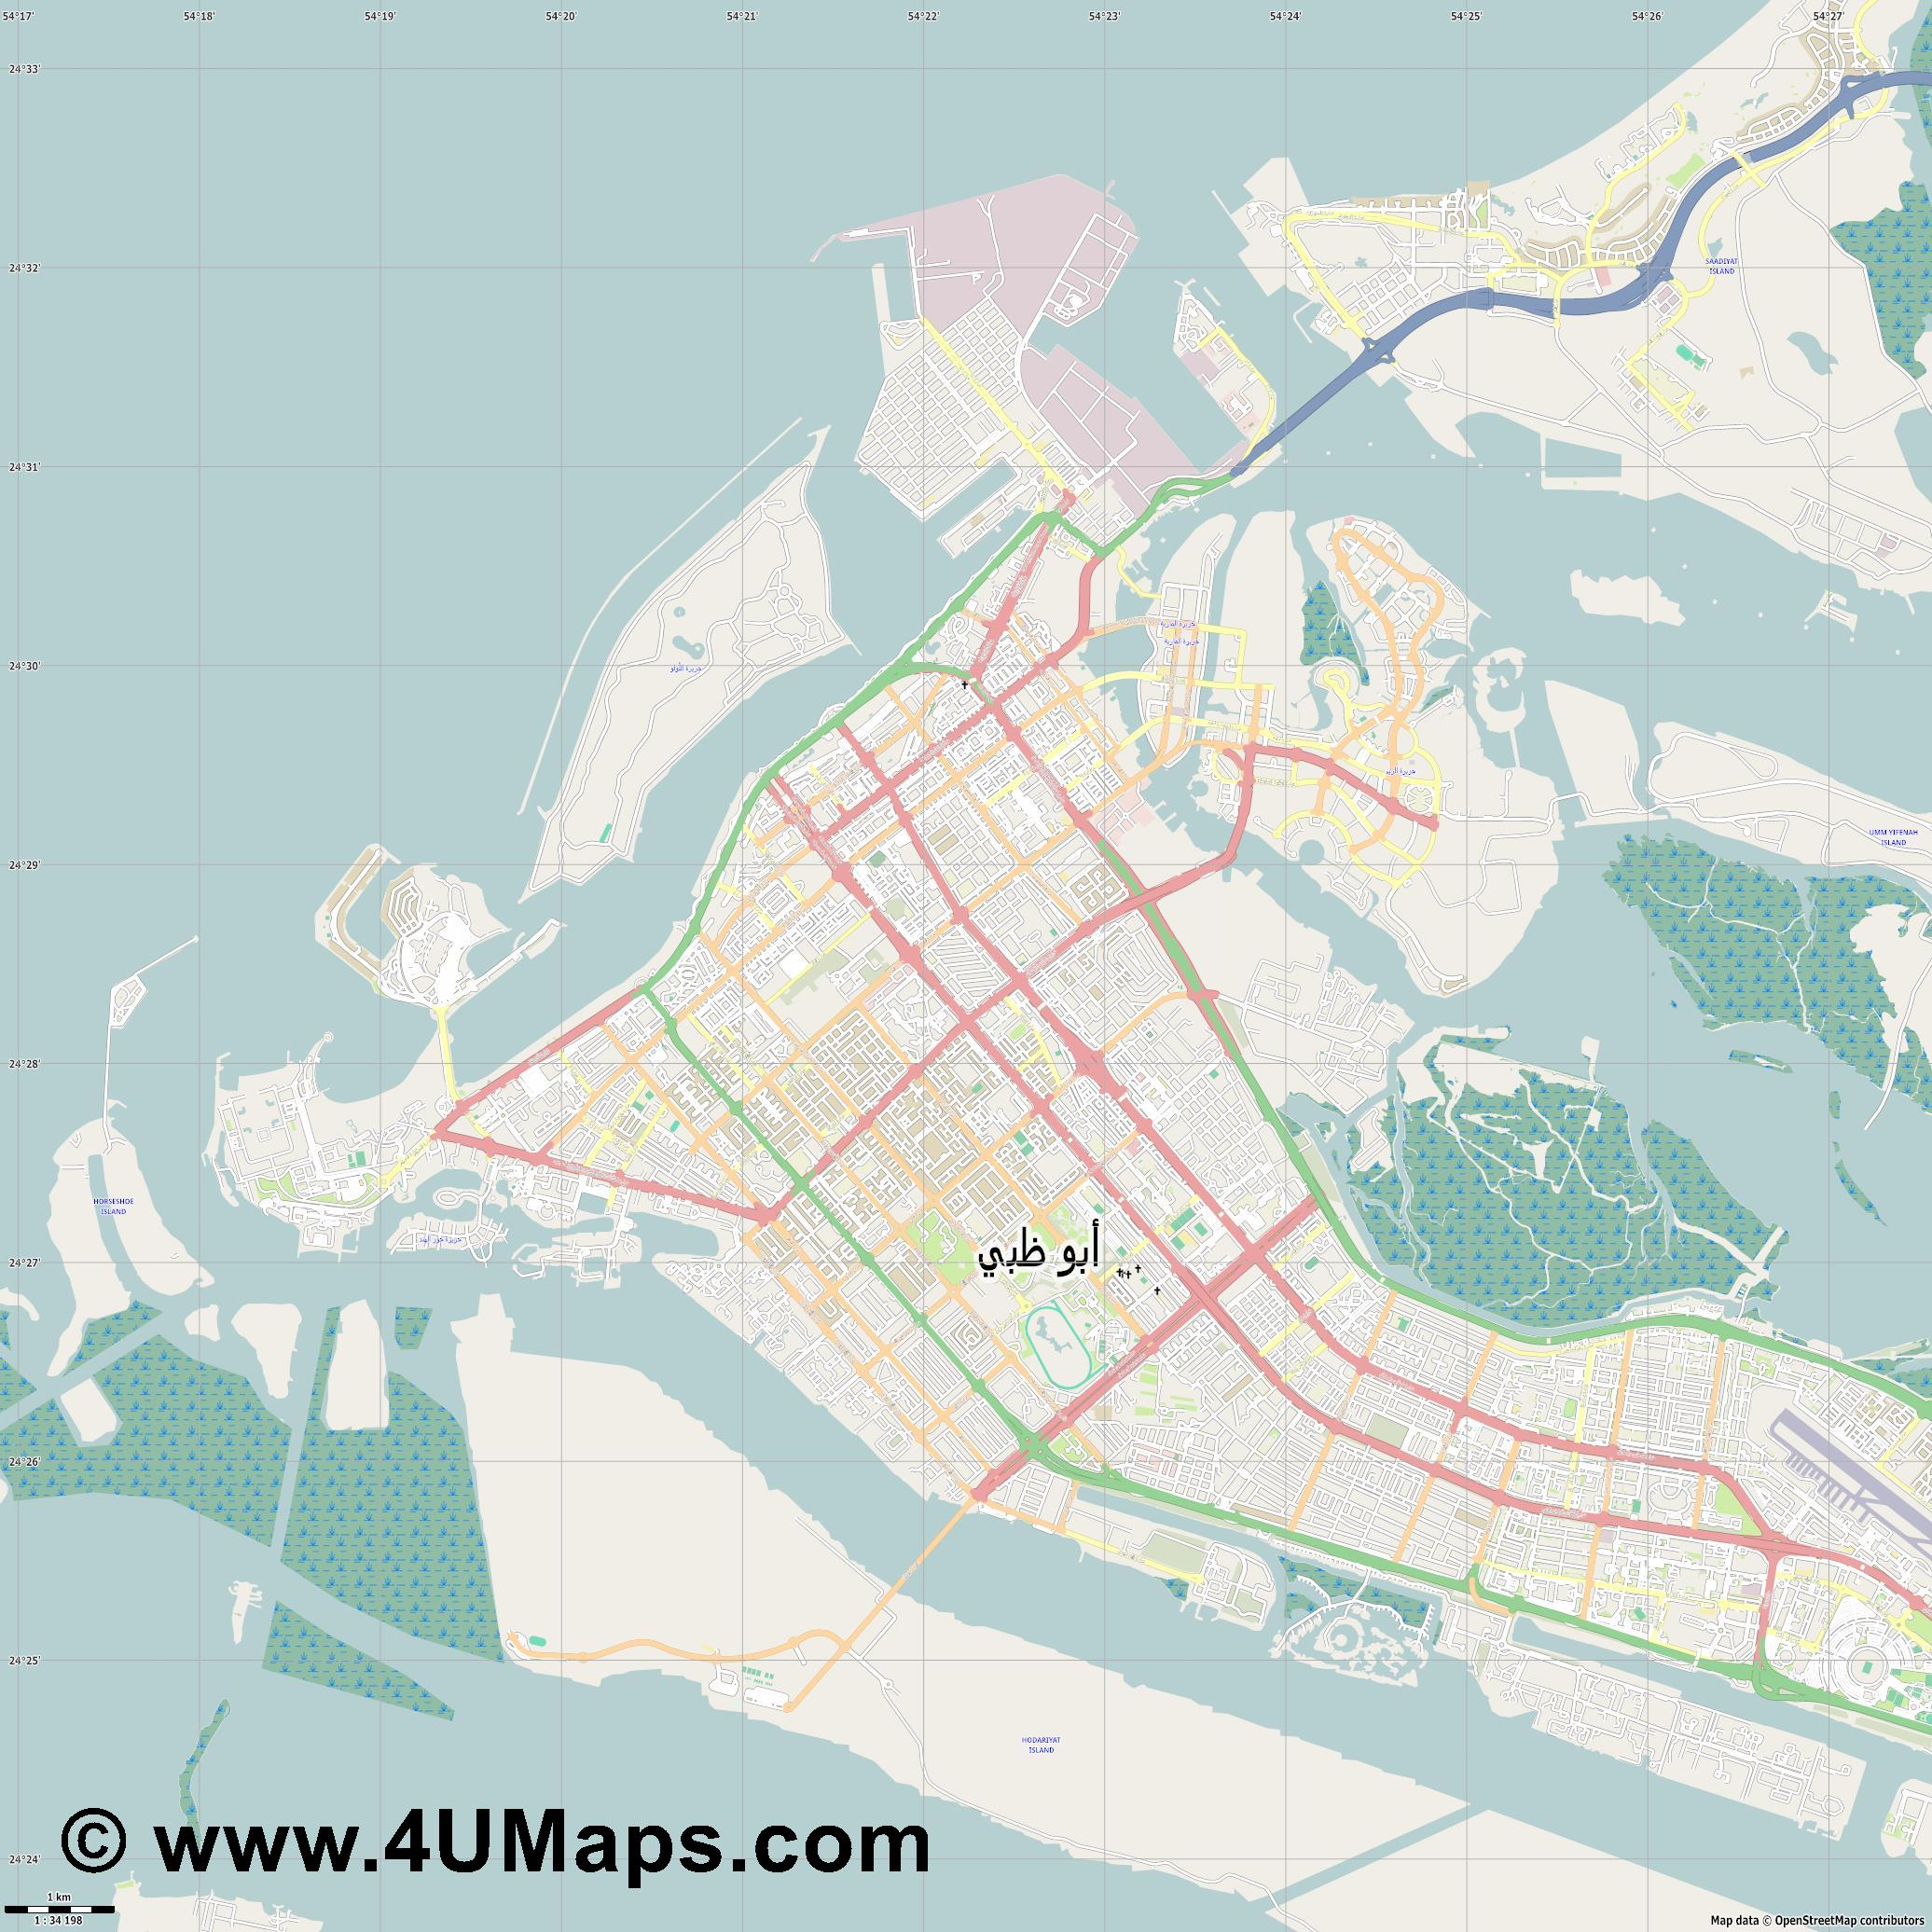 PDF, Svg Scalable Vector City Map Abu Dhabi